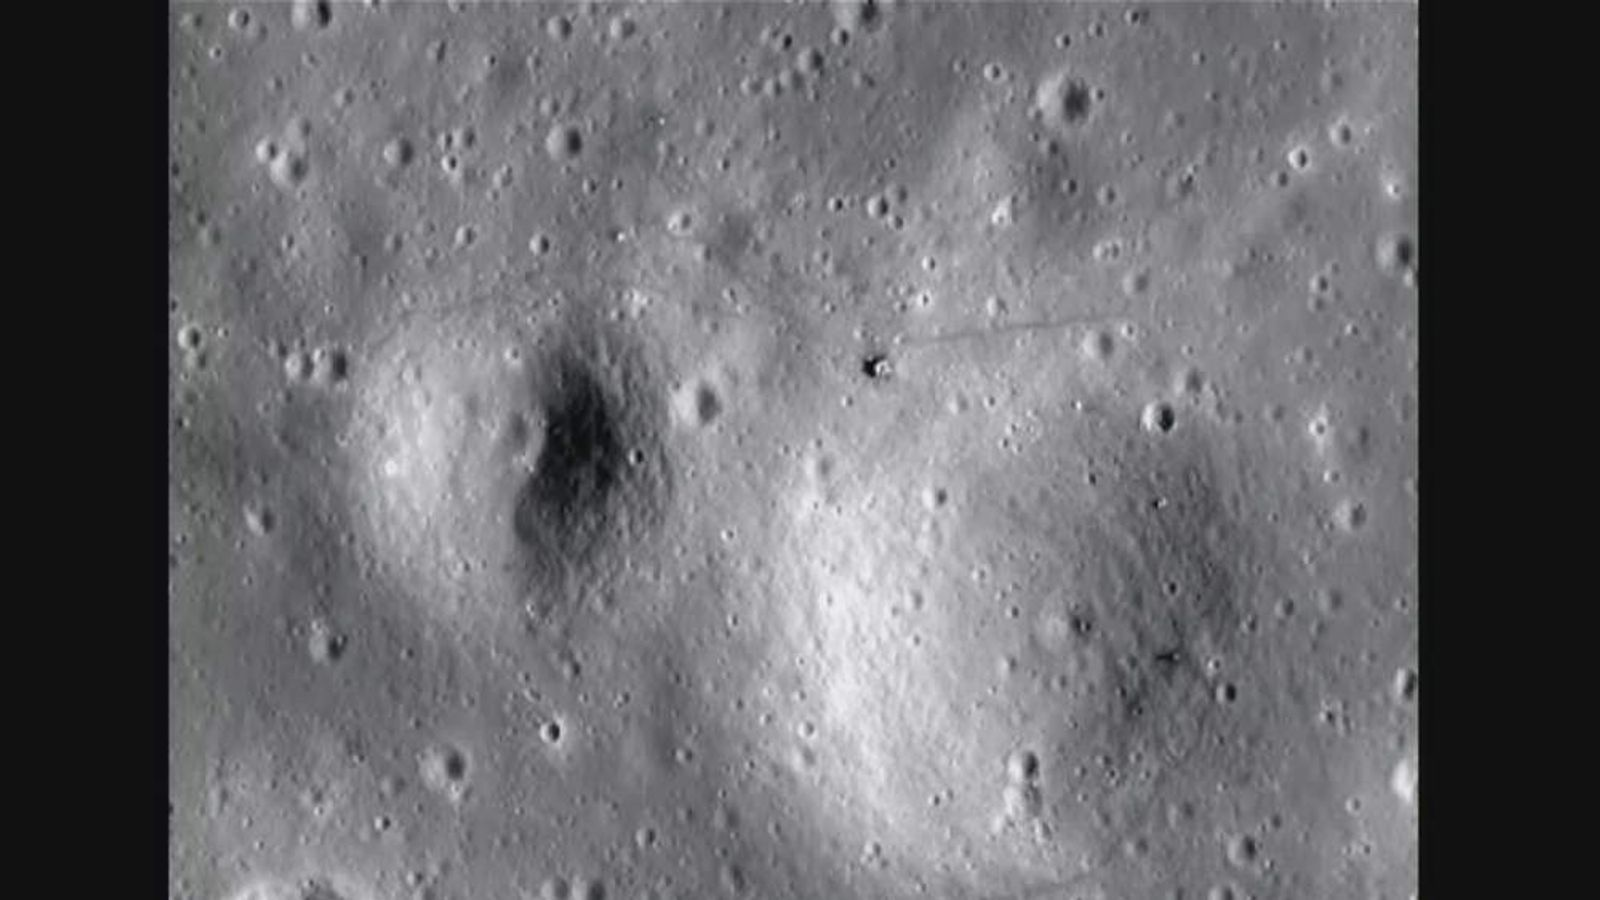 Nasa image from Lunar Reconnaisance Orbiter Camera showing US flag at Apollo 12 landing site on the Moon